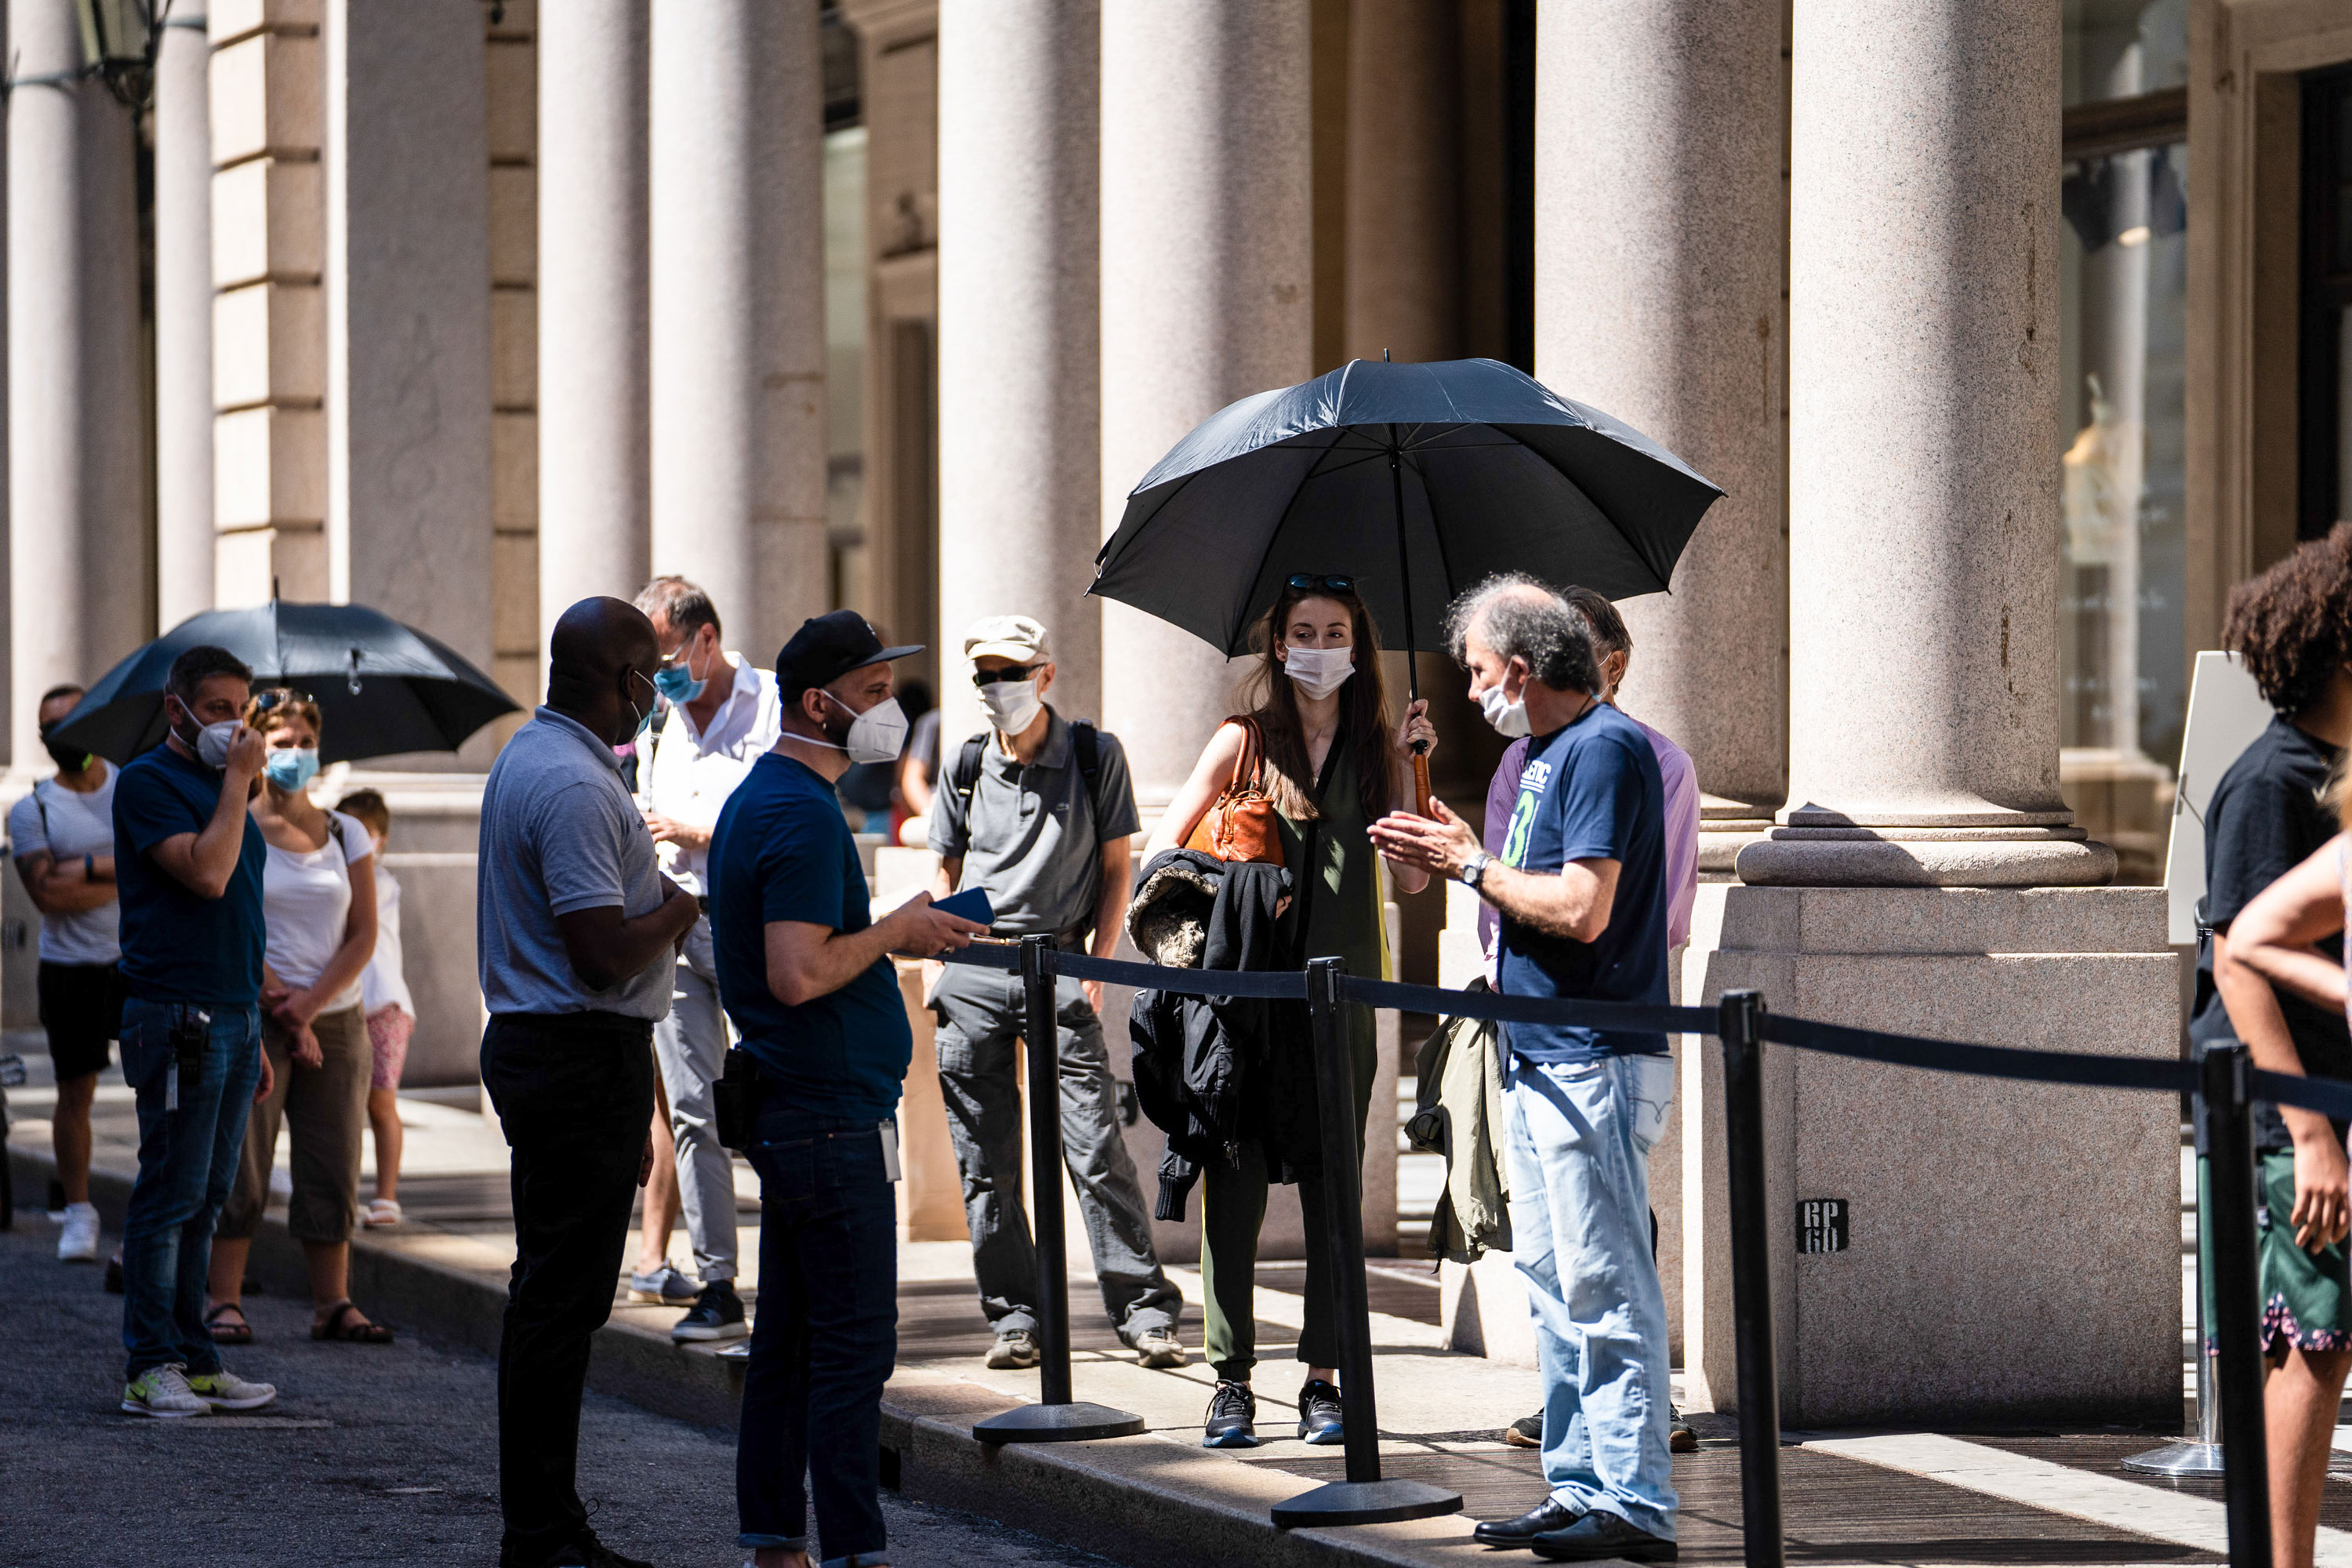 Pedestrians adopt a safe social distance as they stand in line outside an Apple Inc. store in Turin, Italy, on June 23.